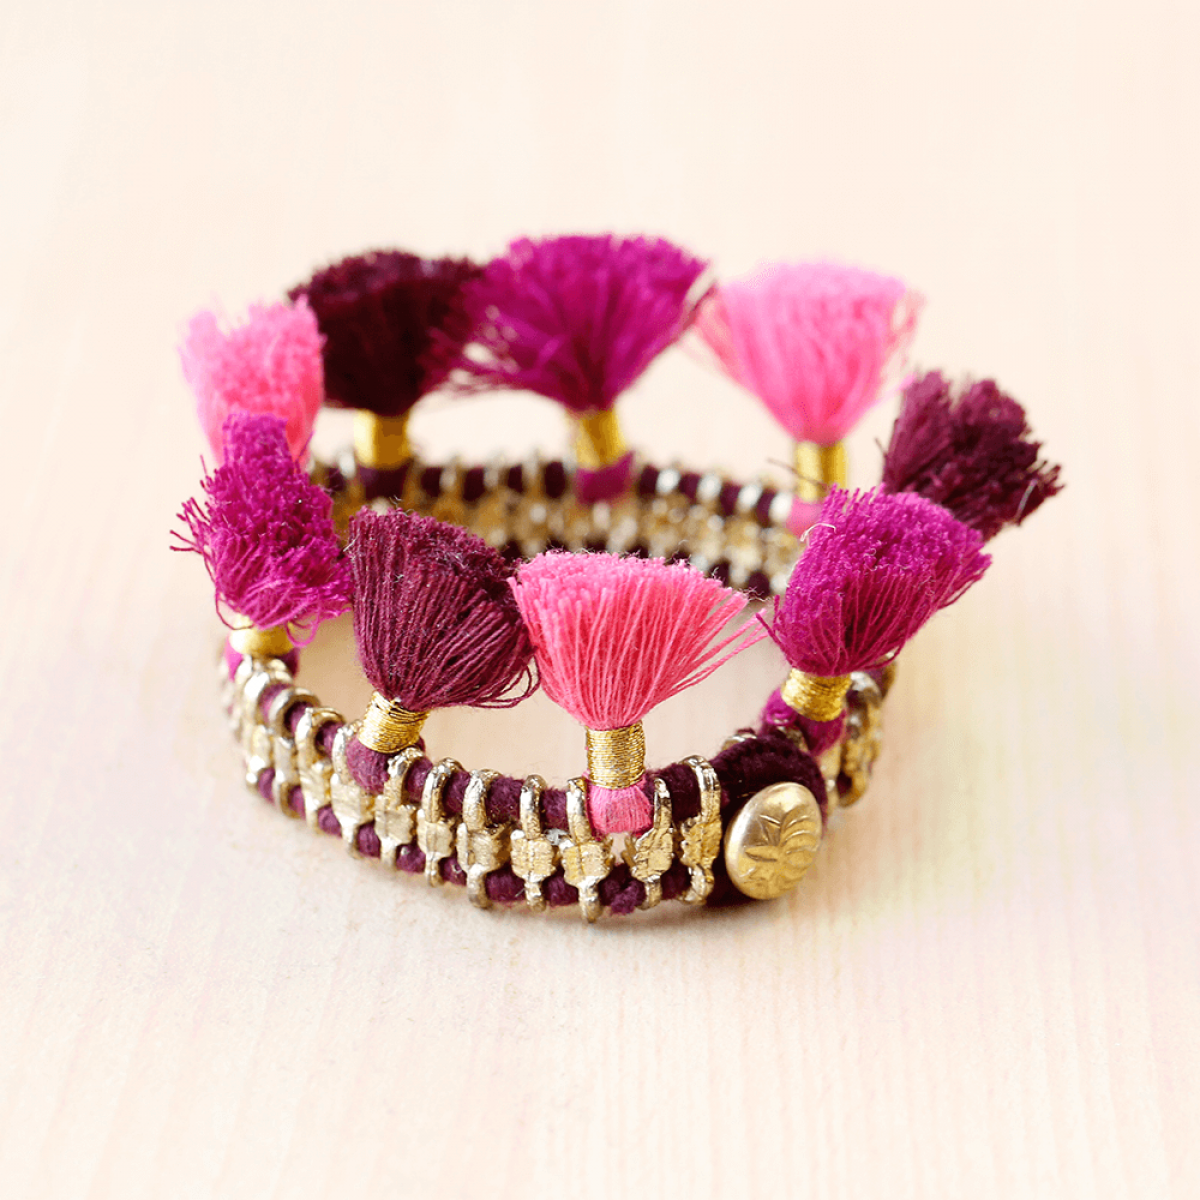 Bohemian Fashion Single Tassel Bracelet - Maroon & Pink